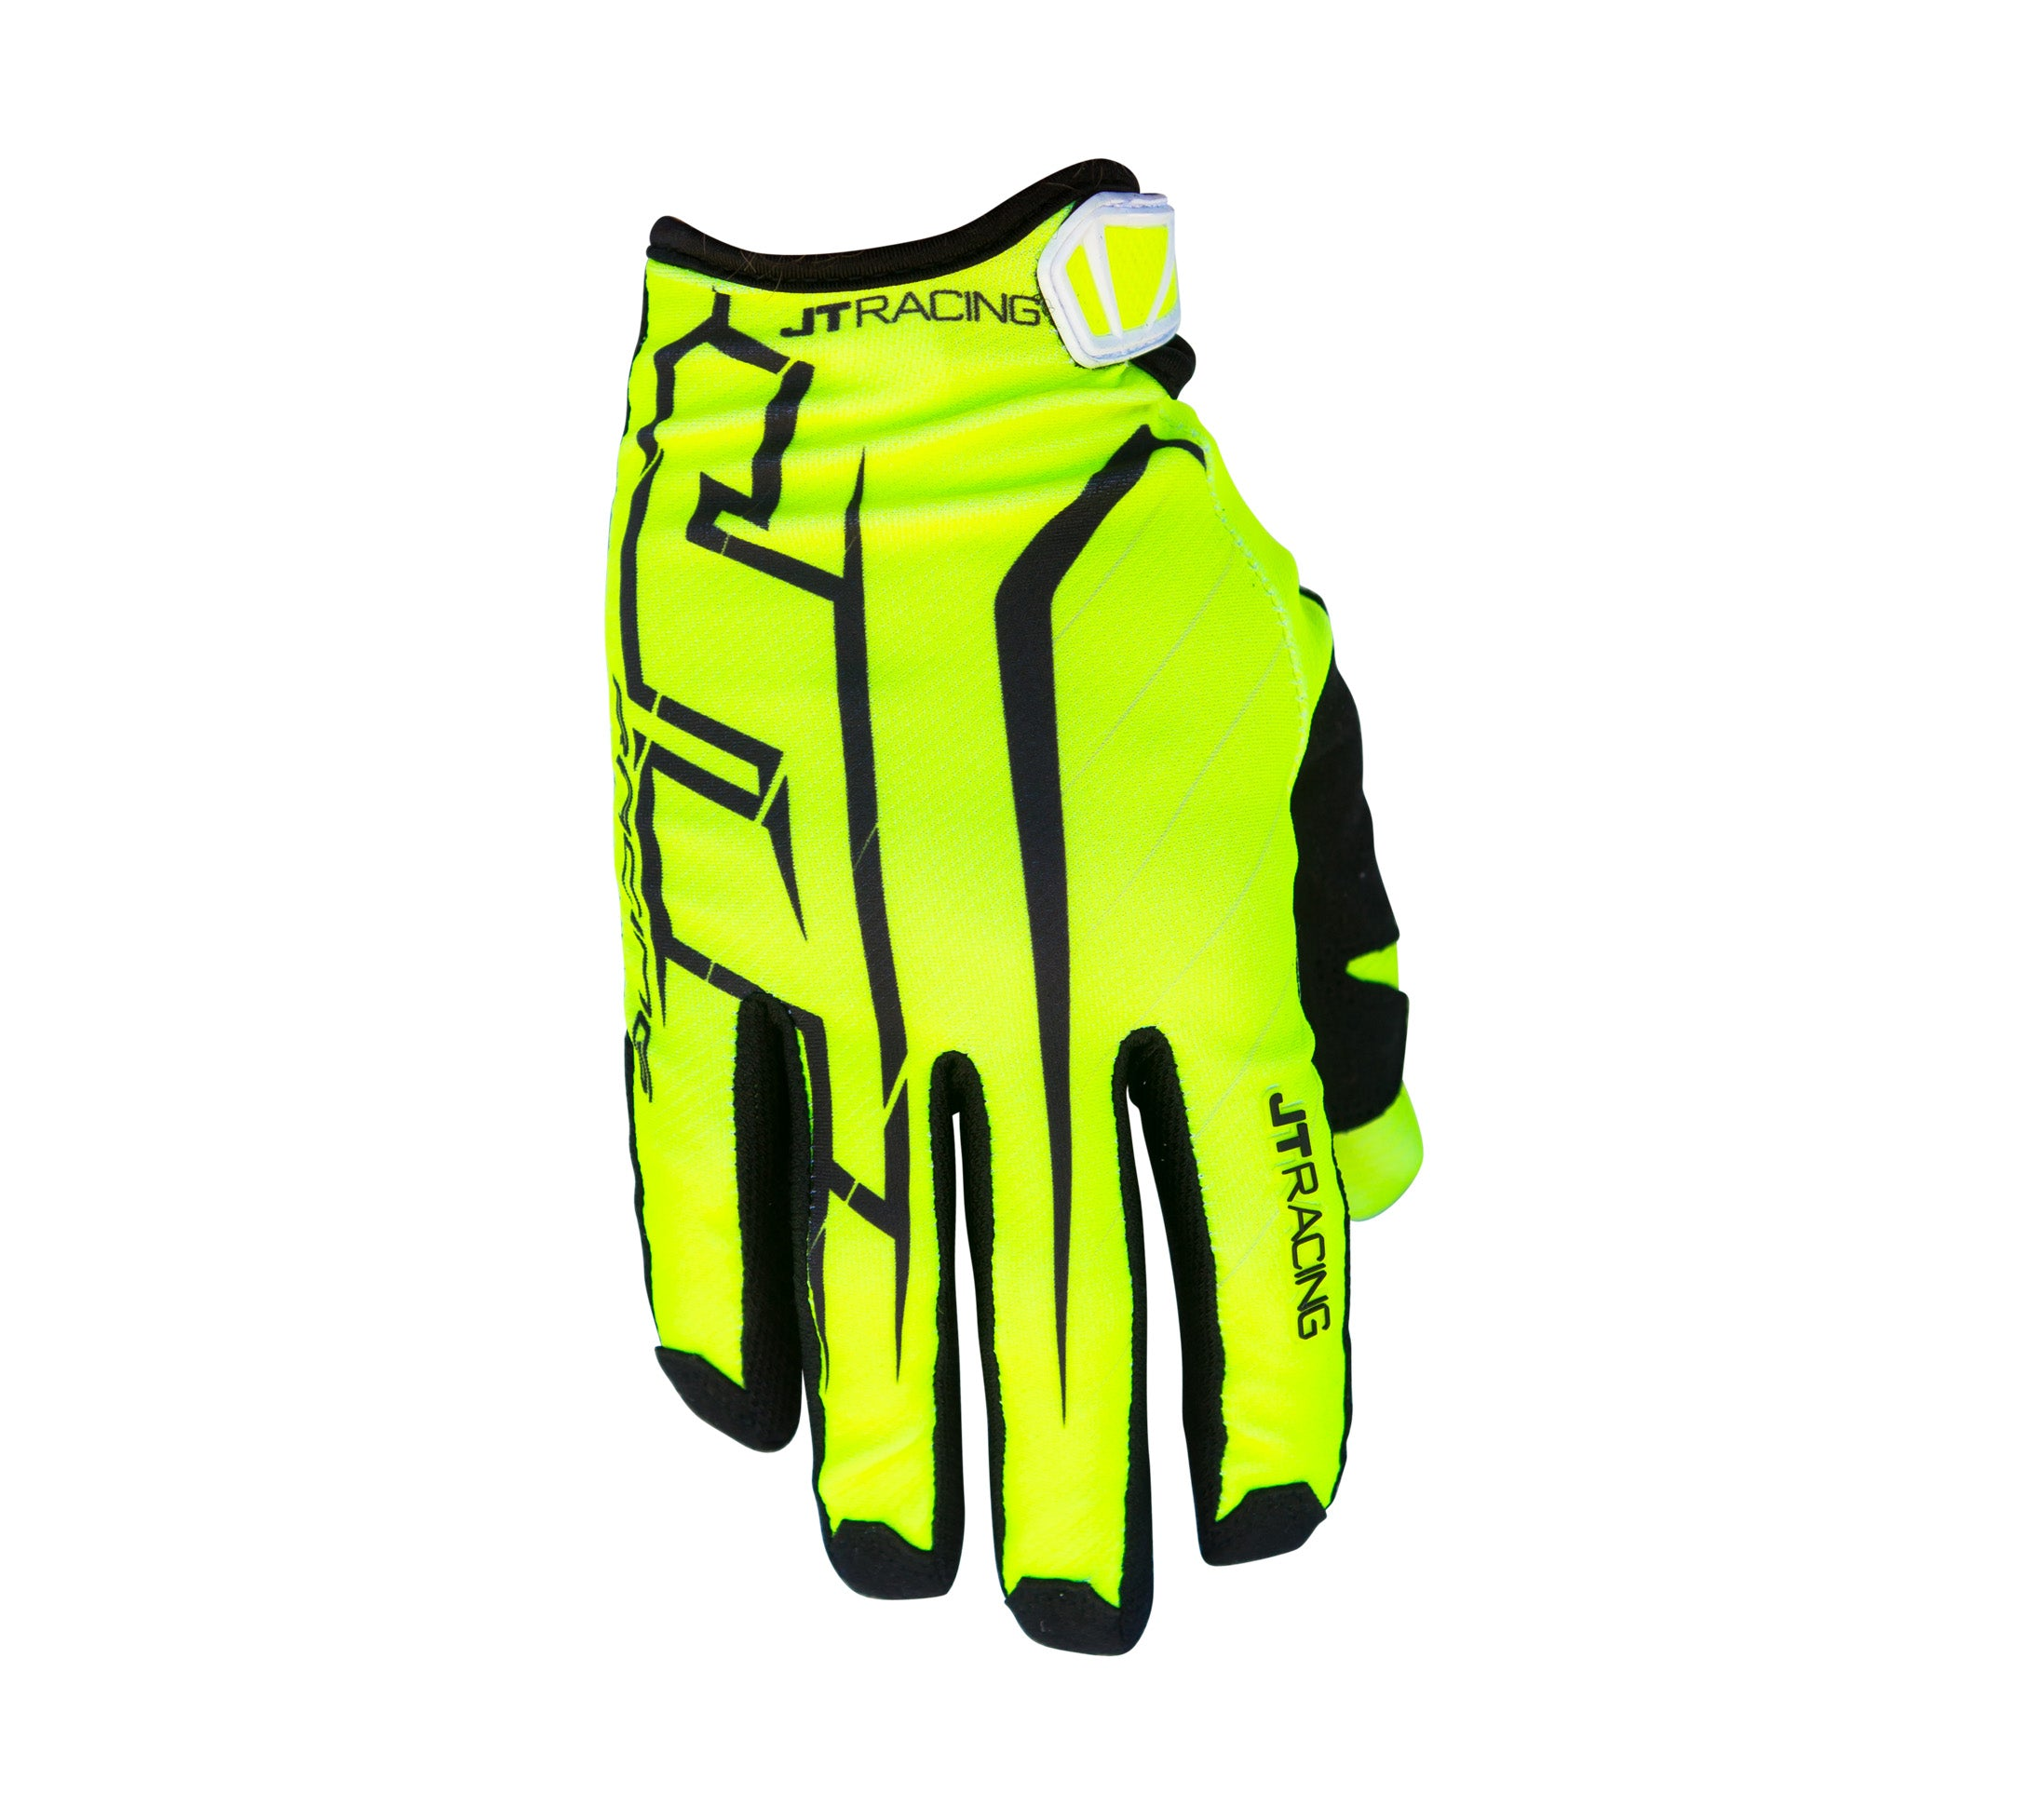 JT Racing USA-Lite Turbo Glove, Yellow/Black